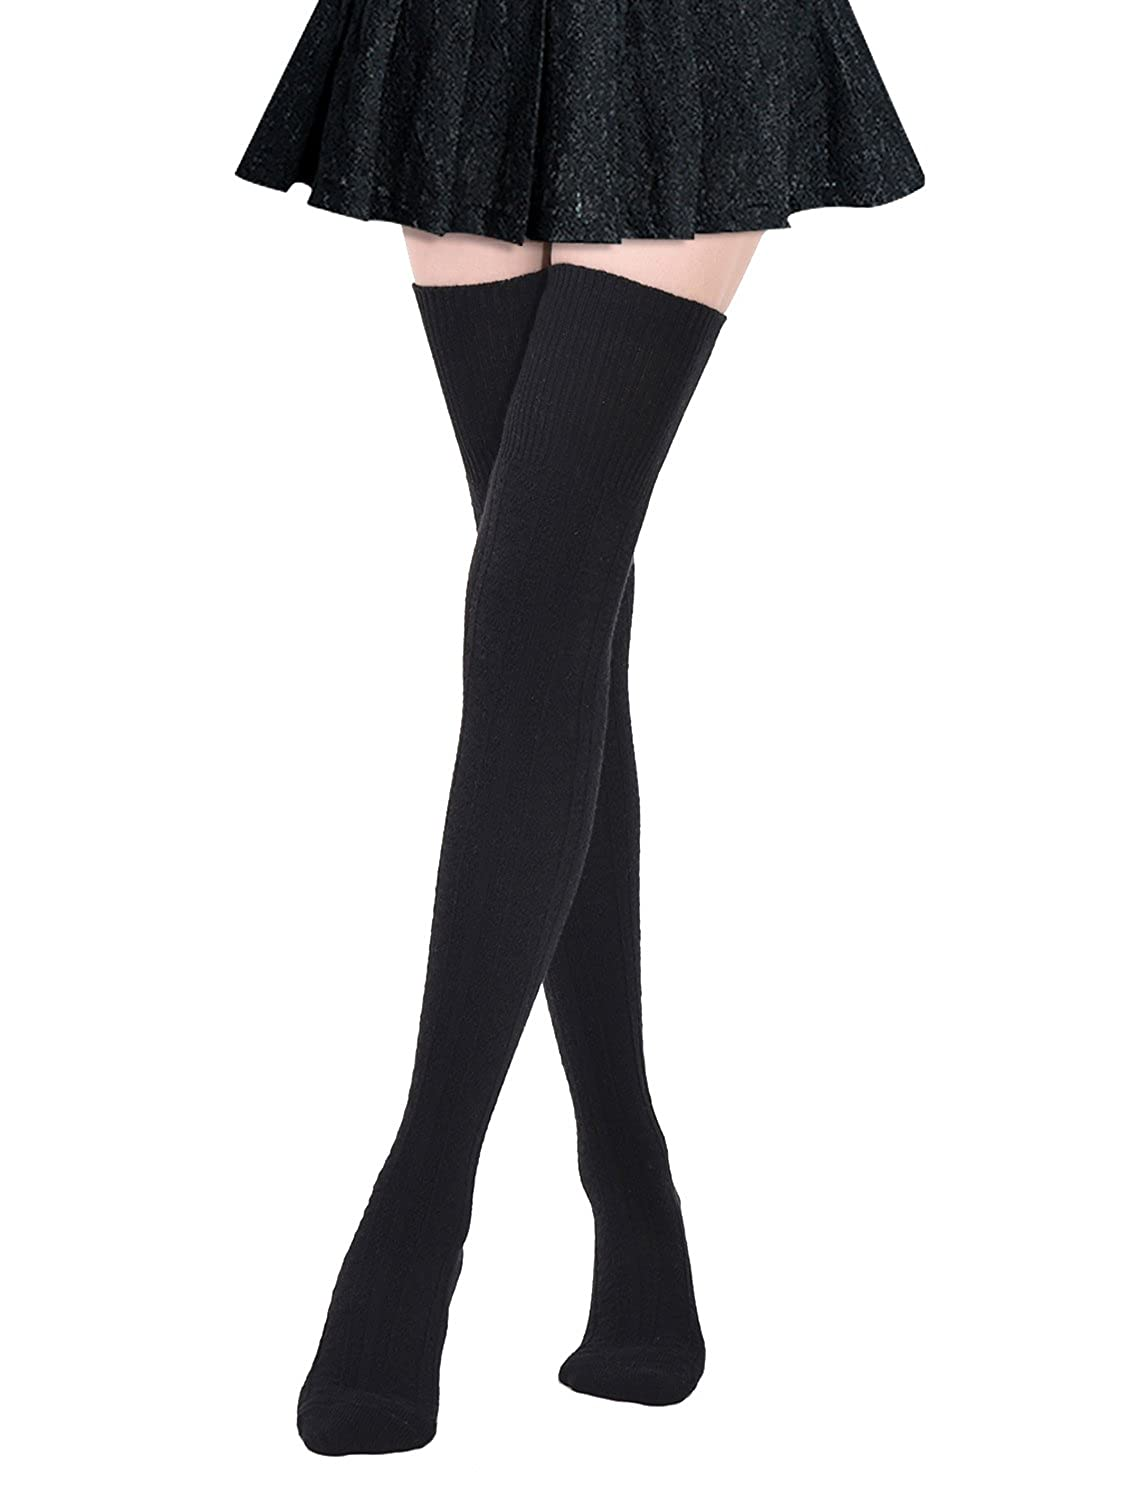 4f4645b4c Kayhoma Extra Long Cotton Thigh High Socks Over the Knee High Boot Stockings  Cotton Leg Warmers at Amazon Women's Clothing store: